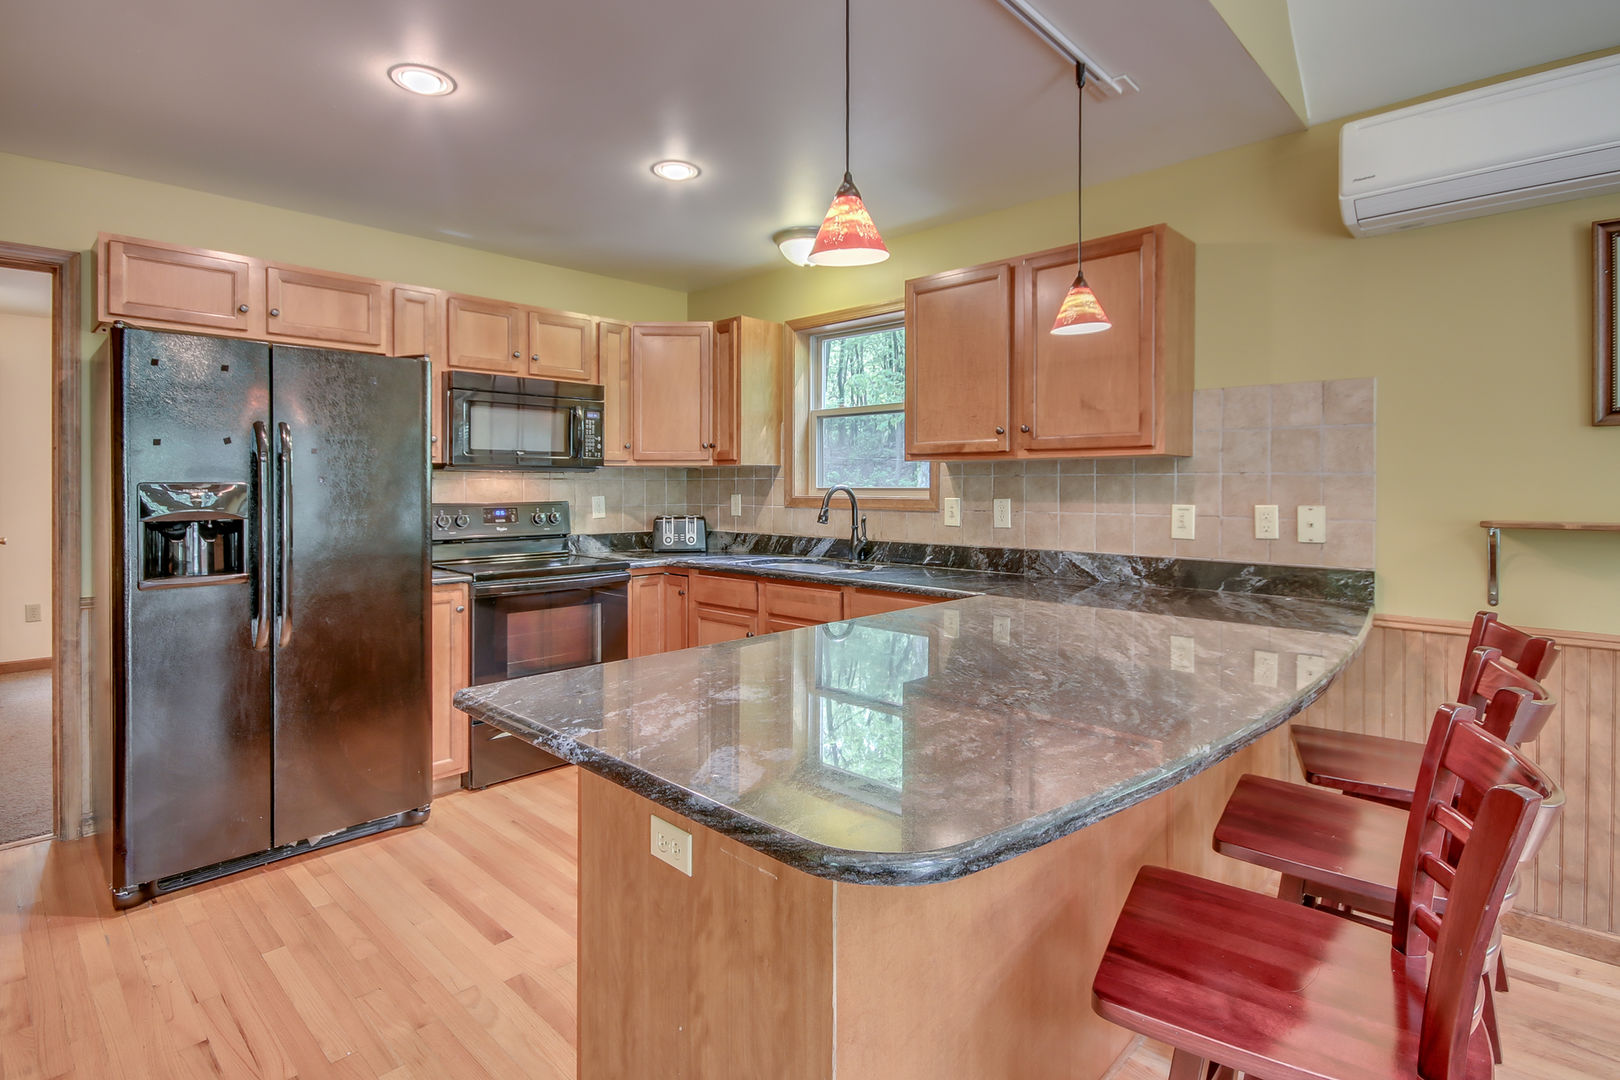 Spacious Kitchen in Our Pocono Mountain Lakefront Rental with Island and Chairs.